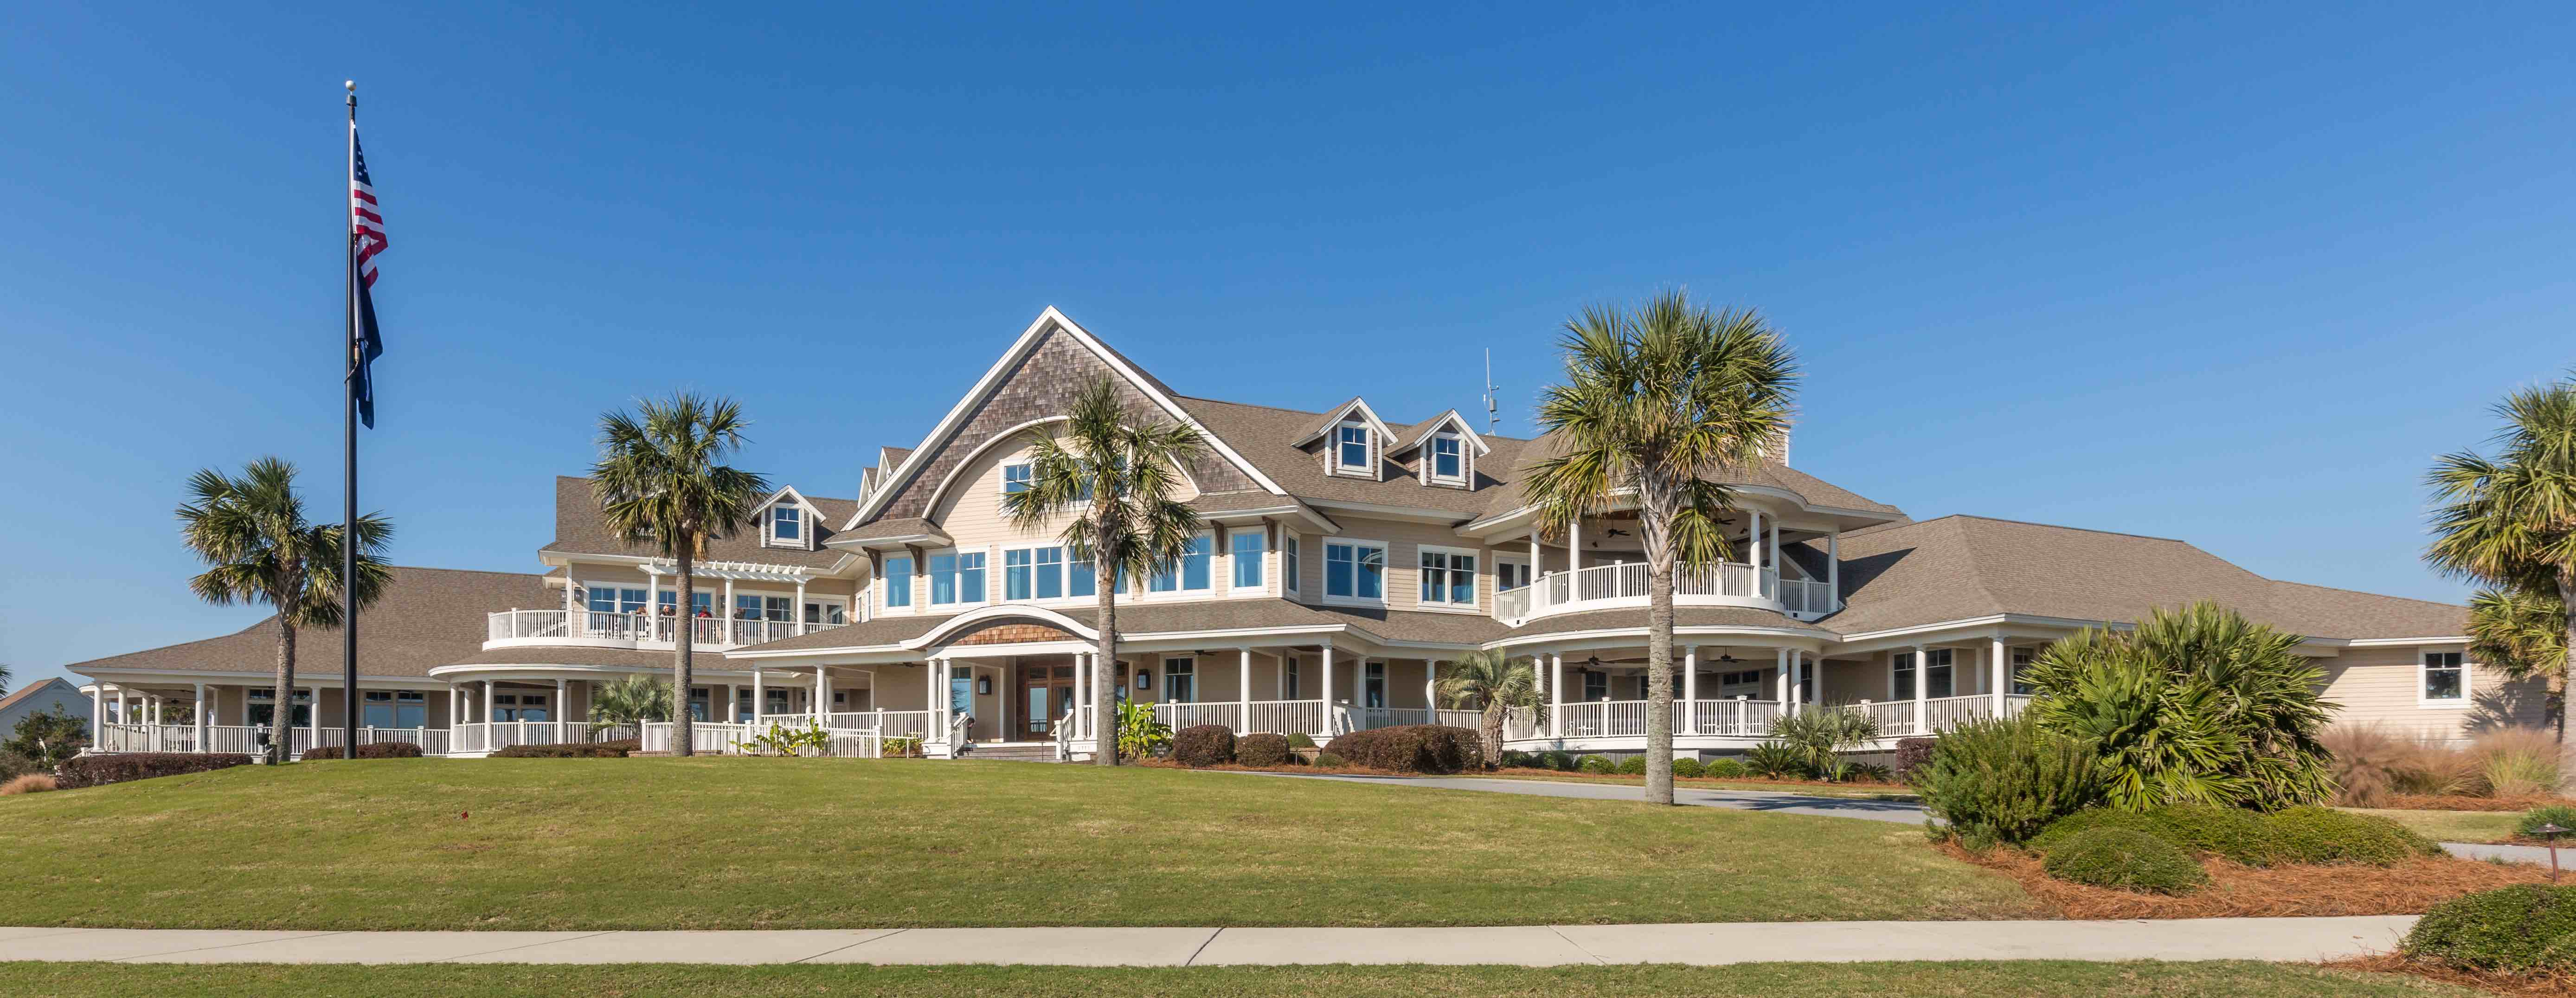 The Charleston Coast Blog - Real Estate, Vacations : Dunes